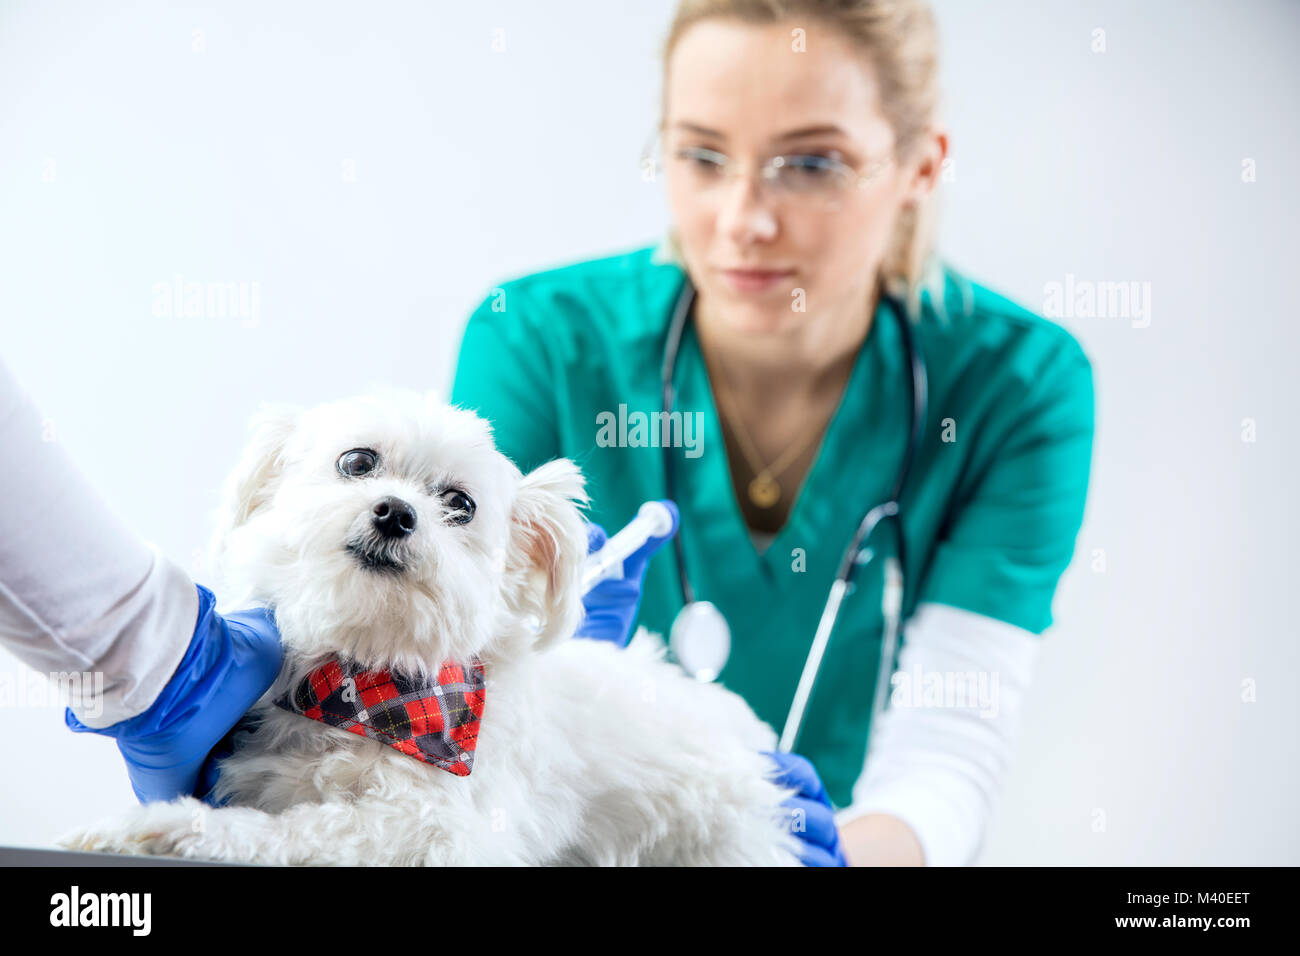 The dog gets an injection by vet - Stock Image